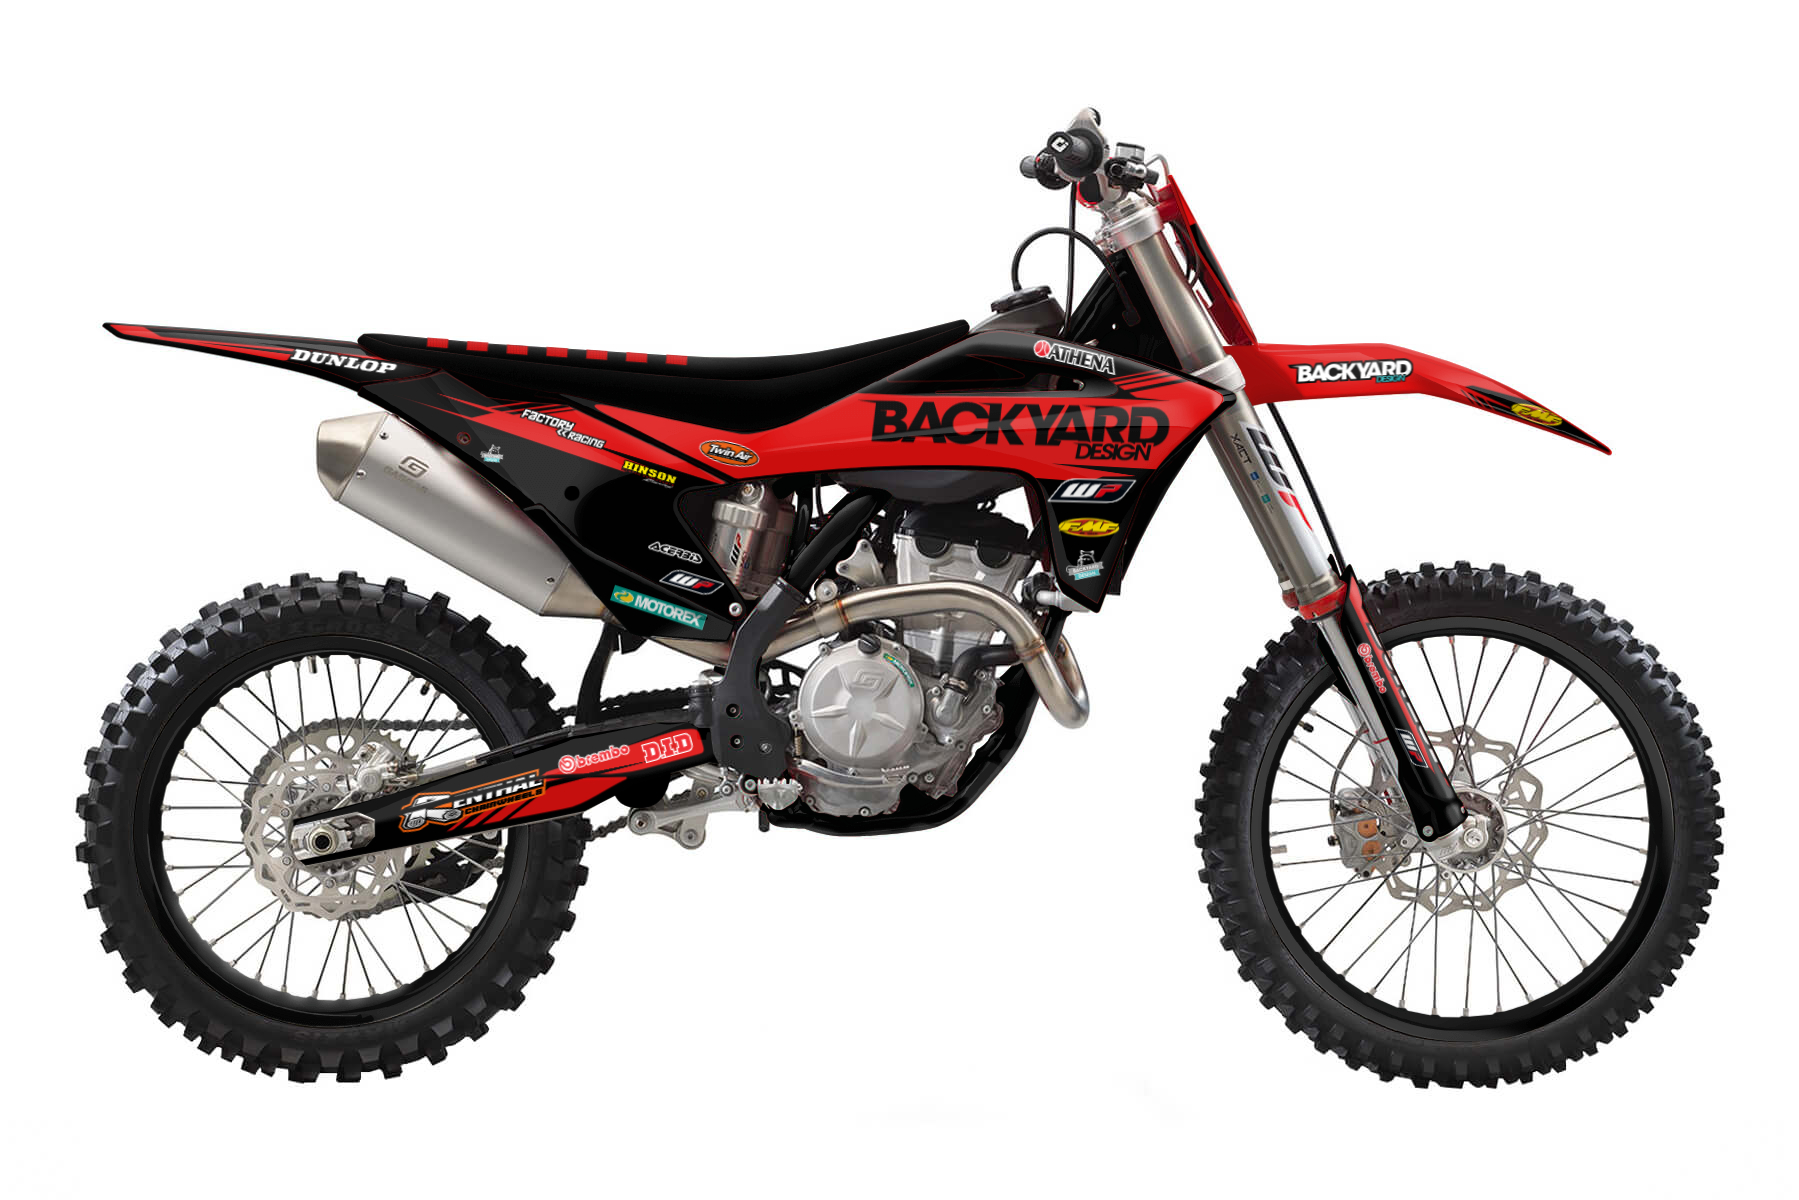 GasGas MC250F Graphic Kits  This four-stroke is made for the dirt tracks. Electronic fuel-injection and a five speed transmission bring pure power to your bike. Dynamic handling comes on top.